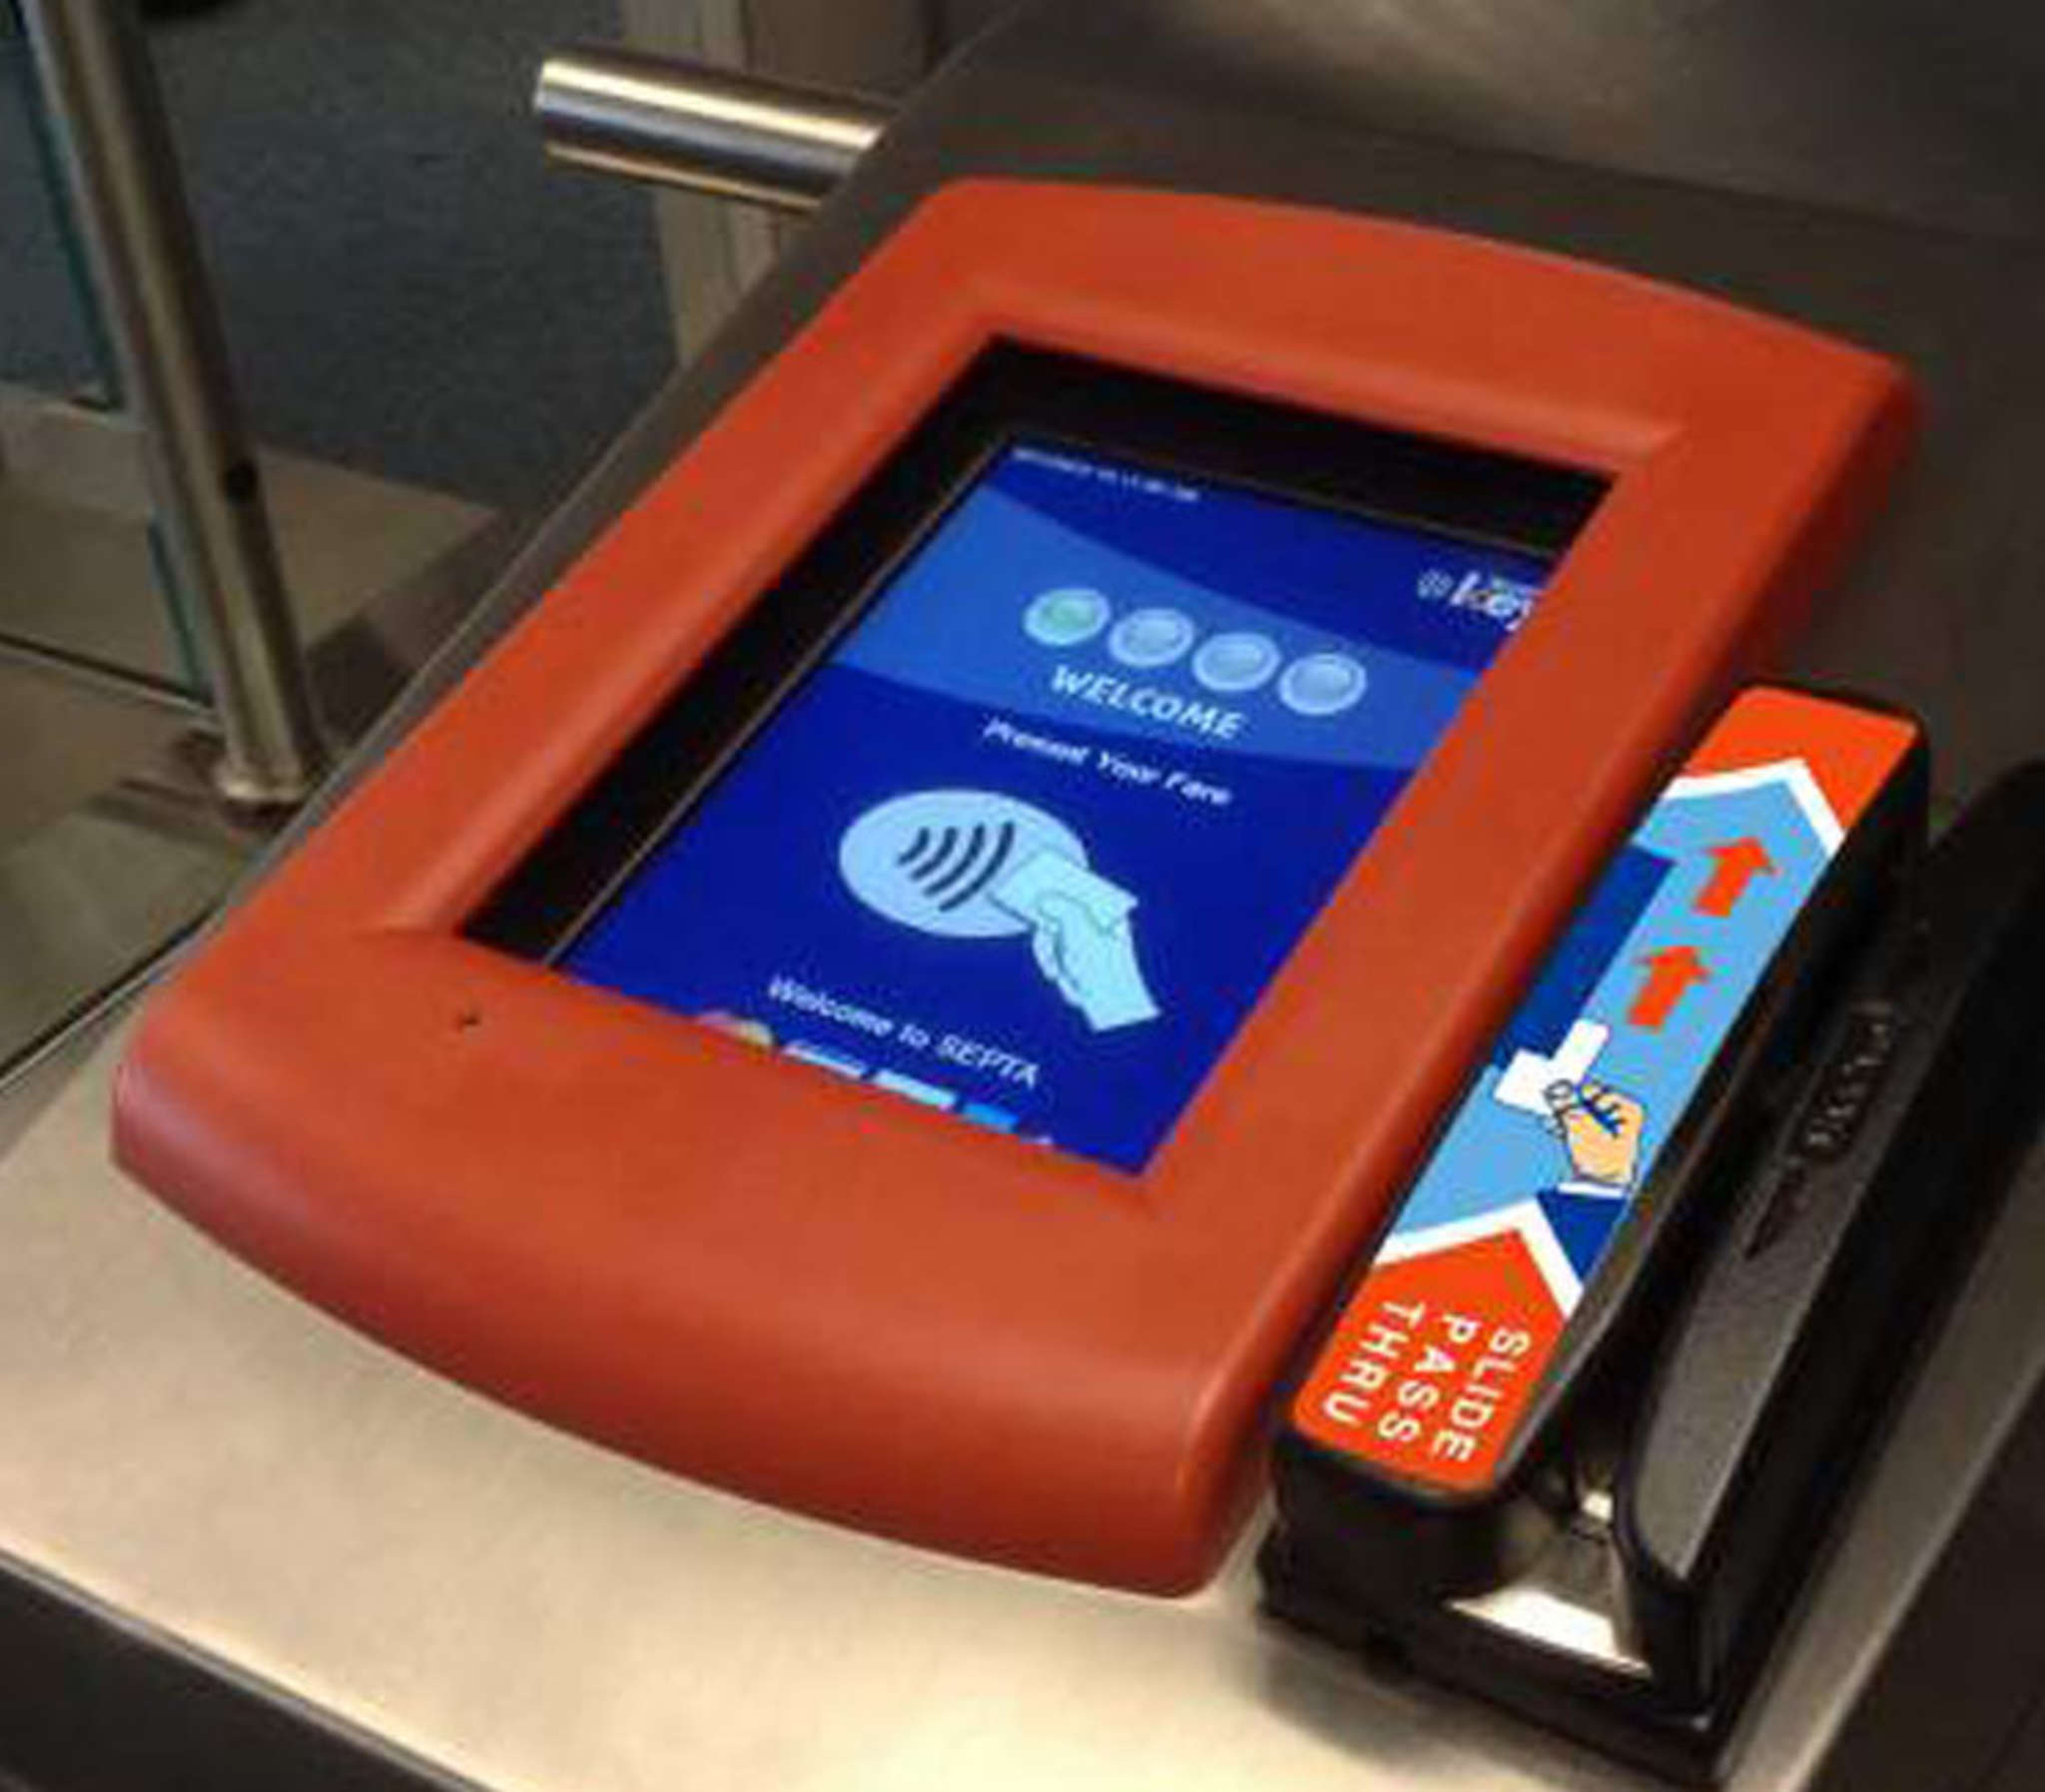 When fully installed - and we´re not sure when that will be - the SEPTA Key reader should be the eventual replacement for those blasted tokens.